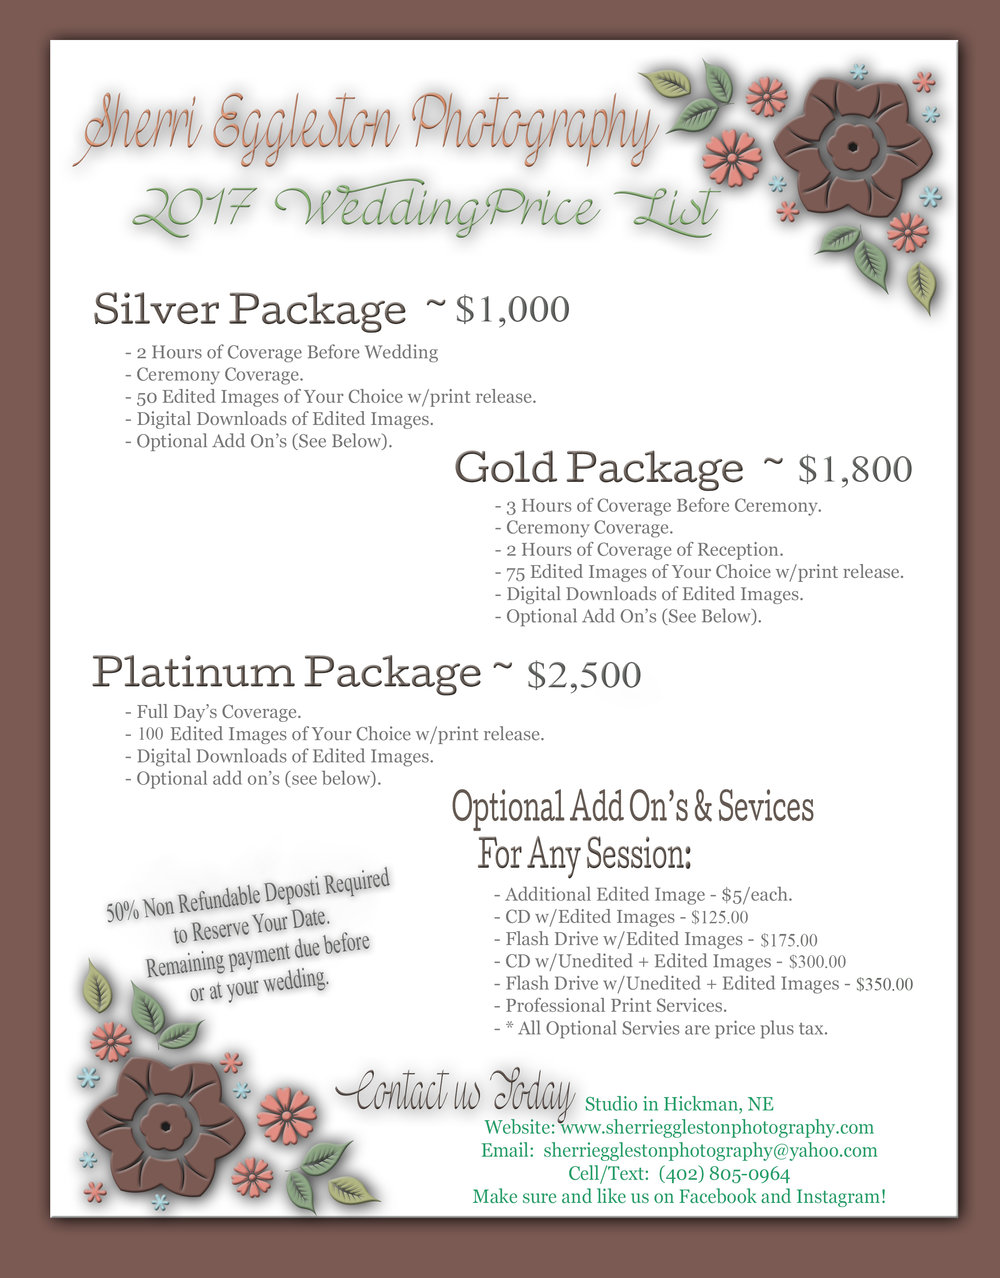 wedding price list .jpg